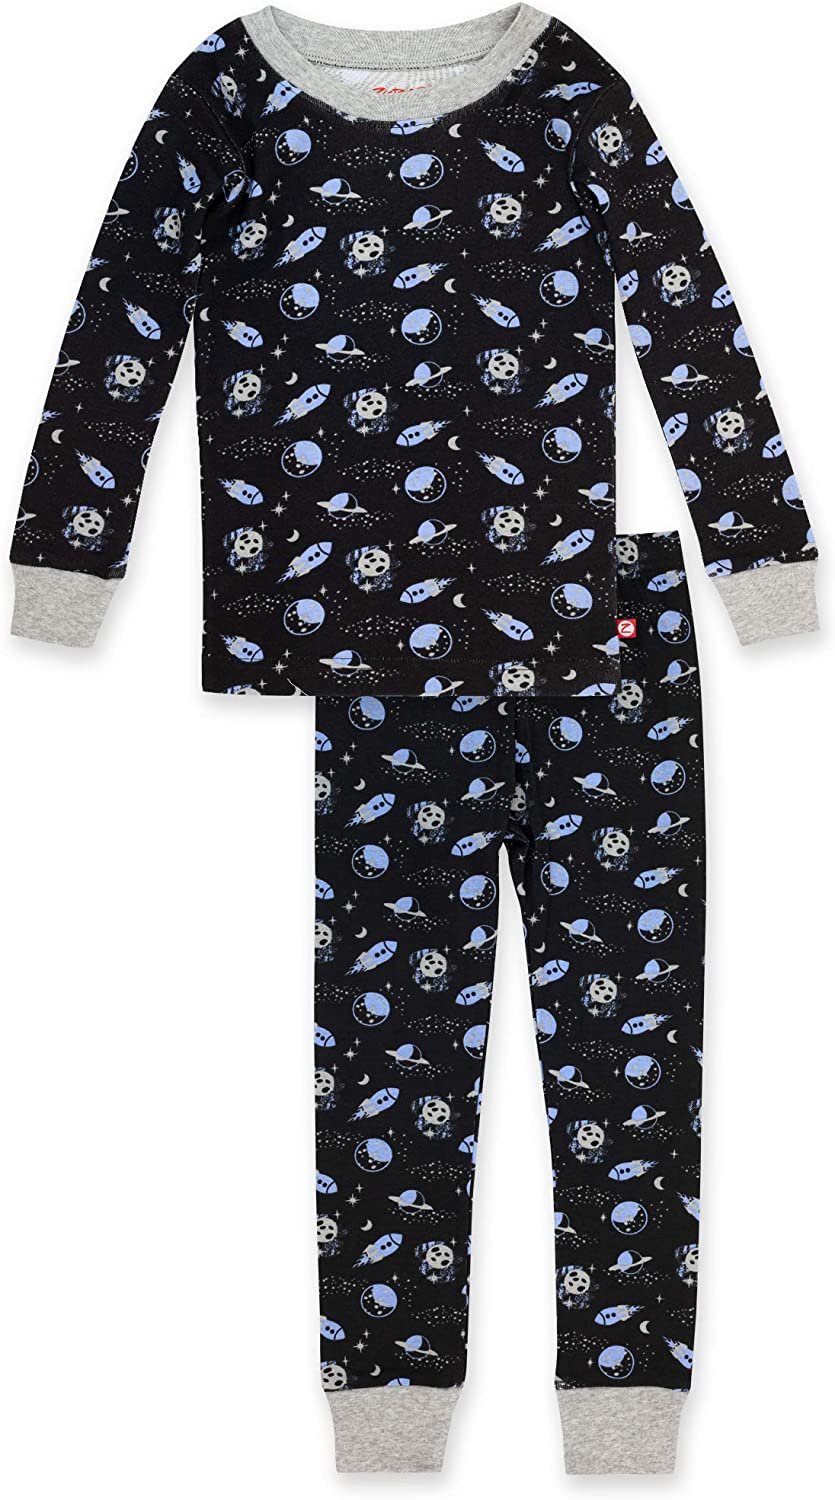 Zutano Baby and Toddler Limited time for free shipping Ranking TOP15 Boys' Pajamas Pajama Set Two-Piece